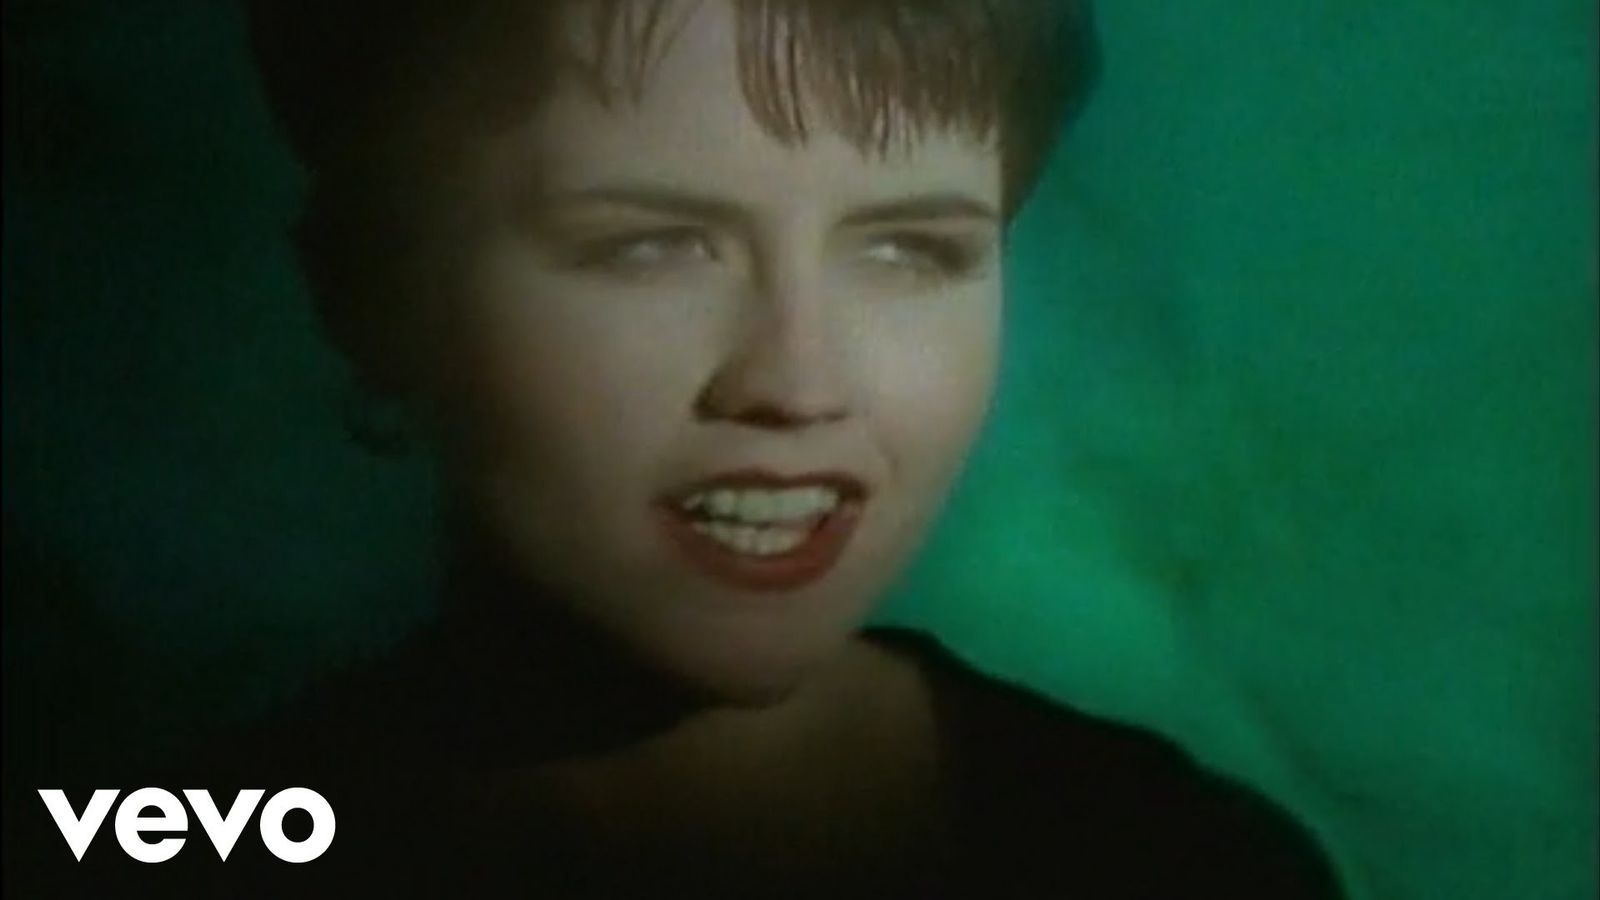 'Dreams', The Cranberries